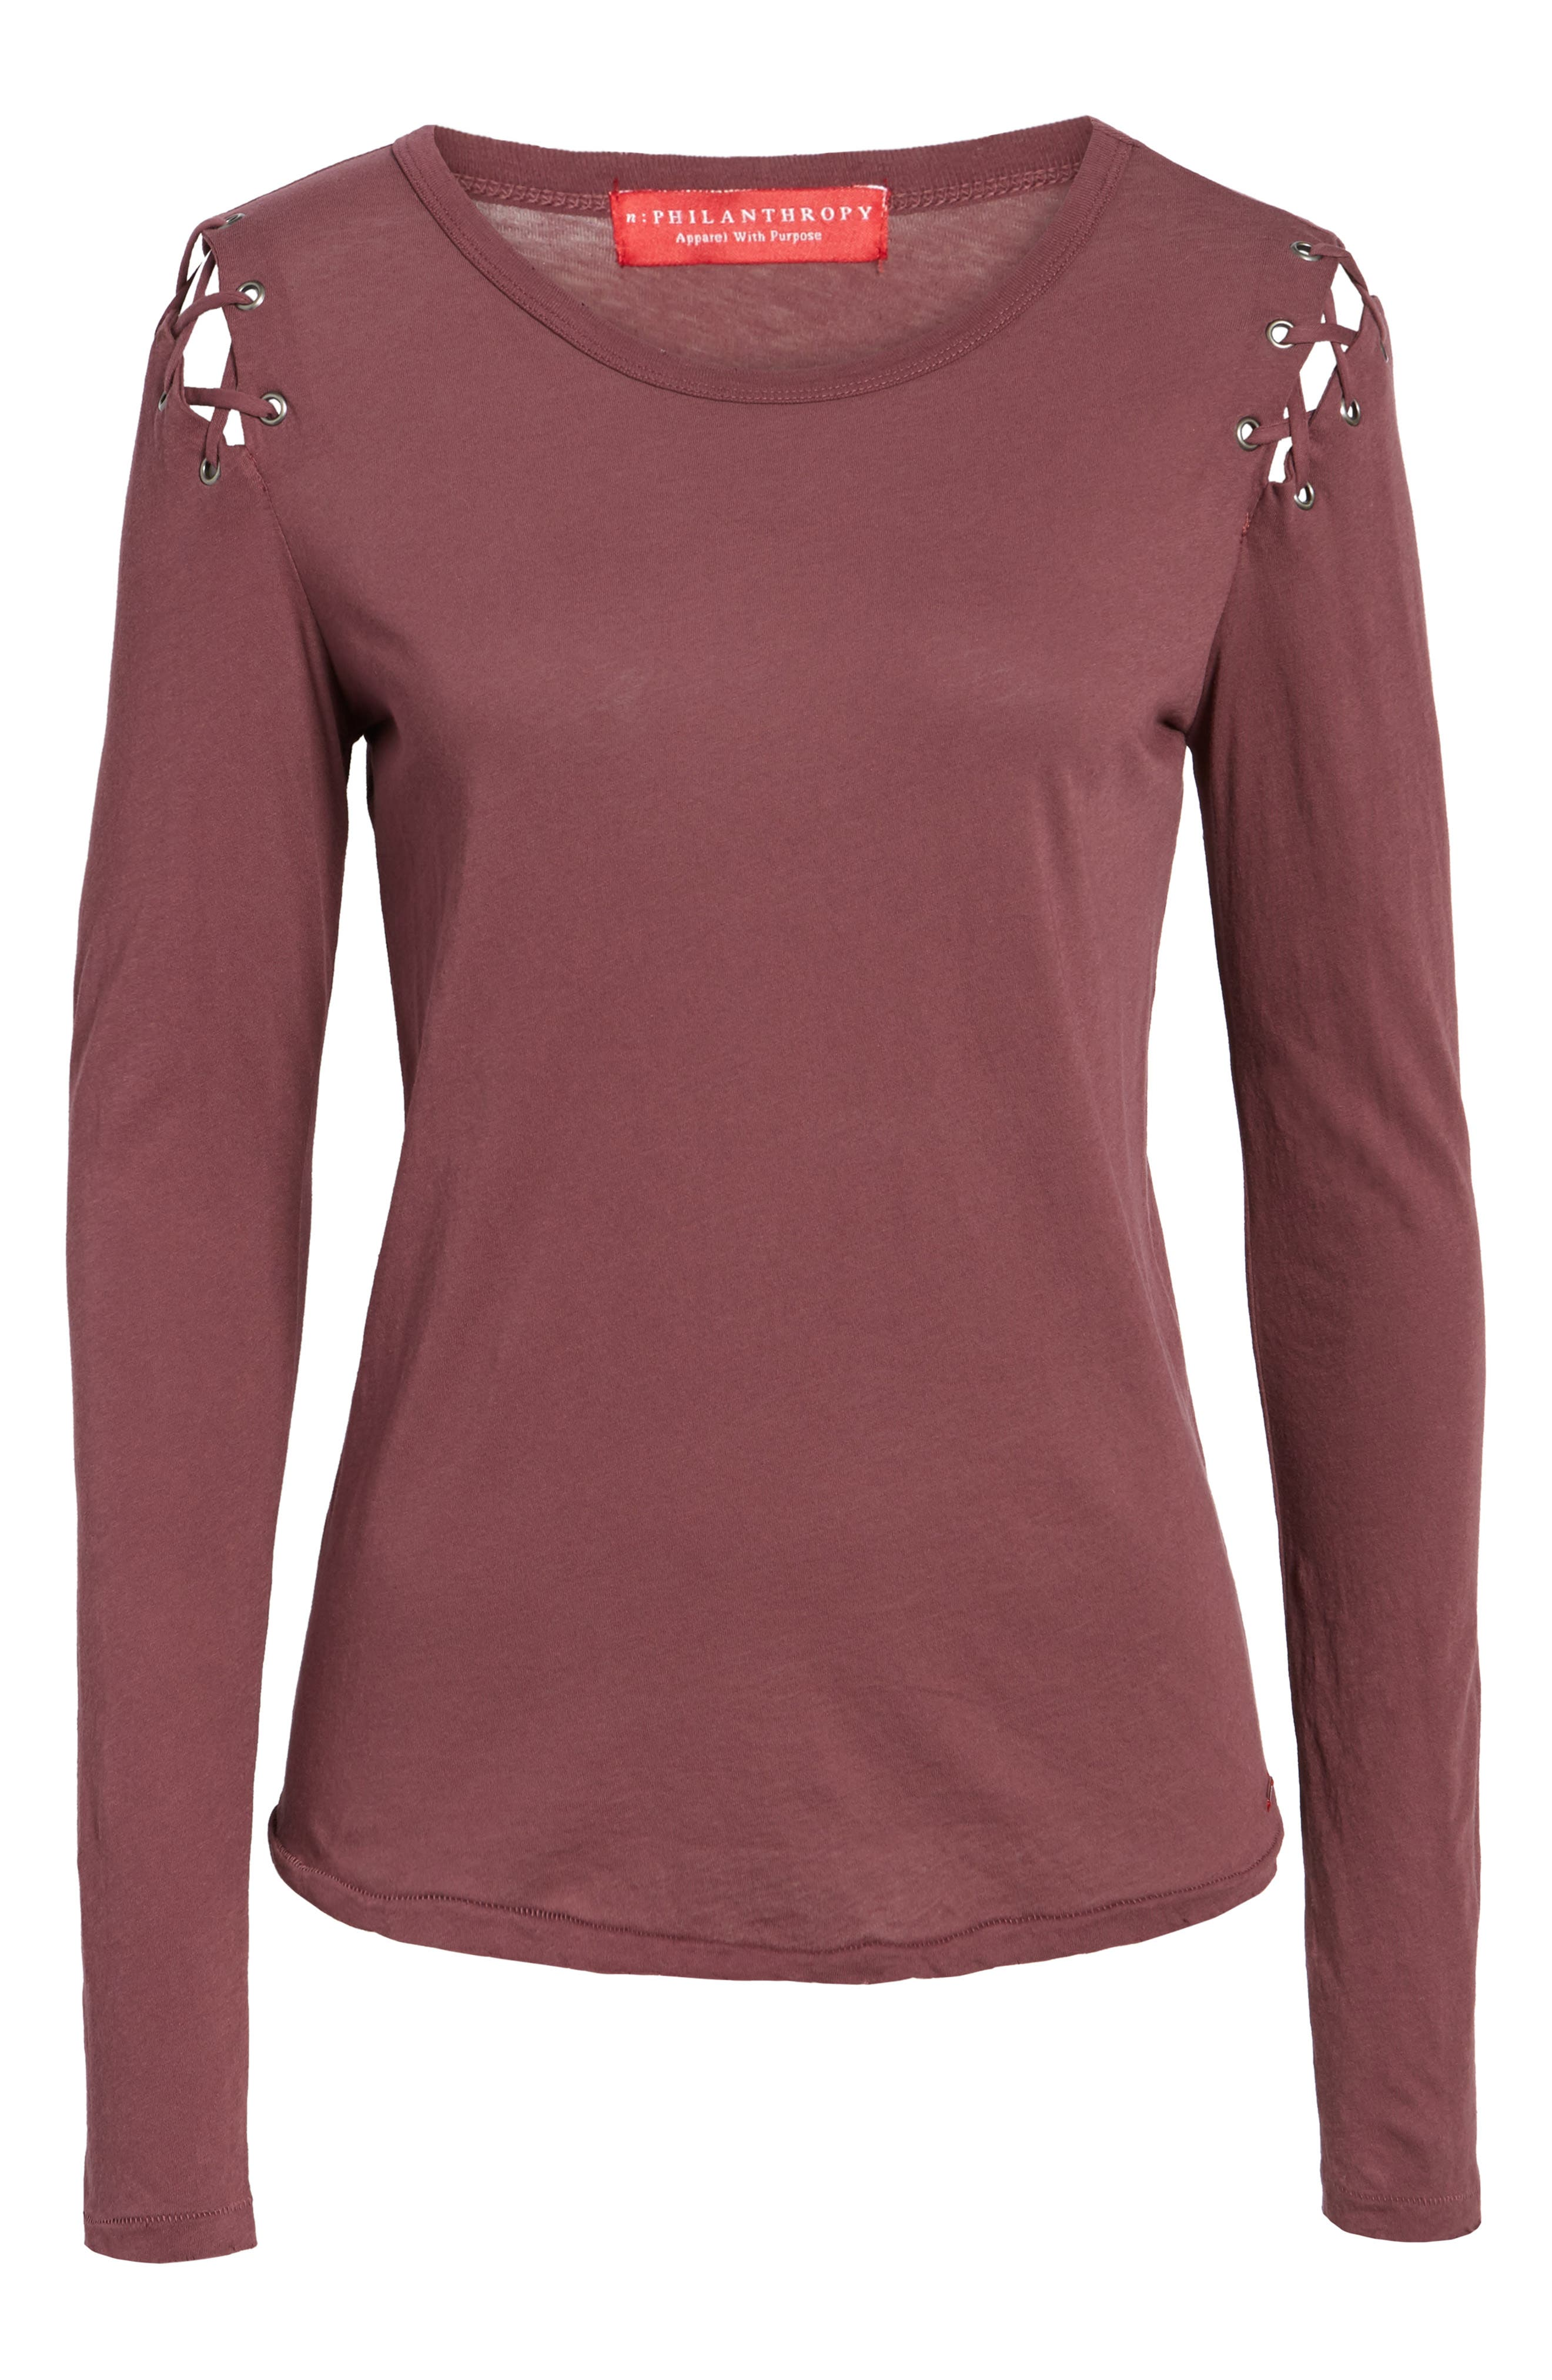 Darcia Lace-Up Tee,                             Alternate thumbnail 6, color,                             930